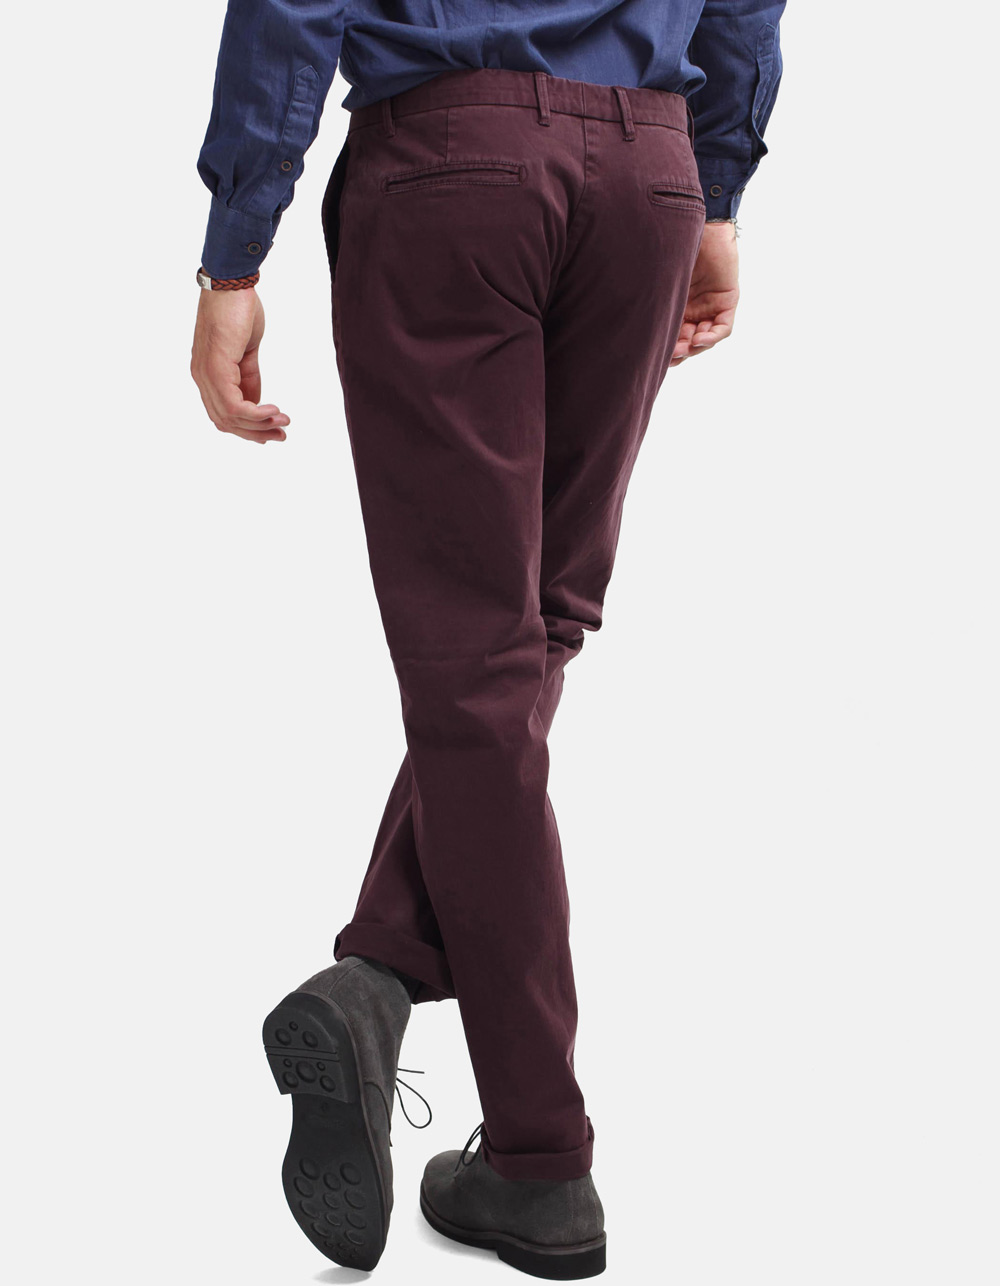 Burgundy chinos trousers - Backside